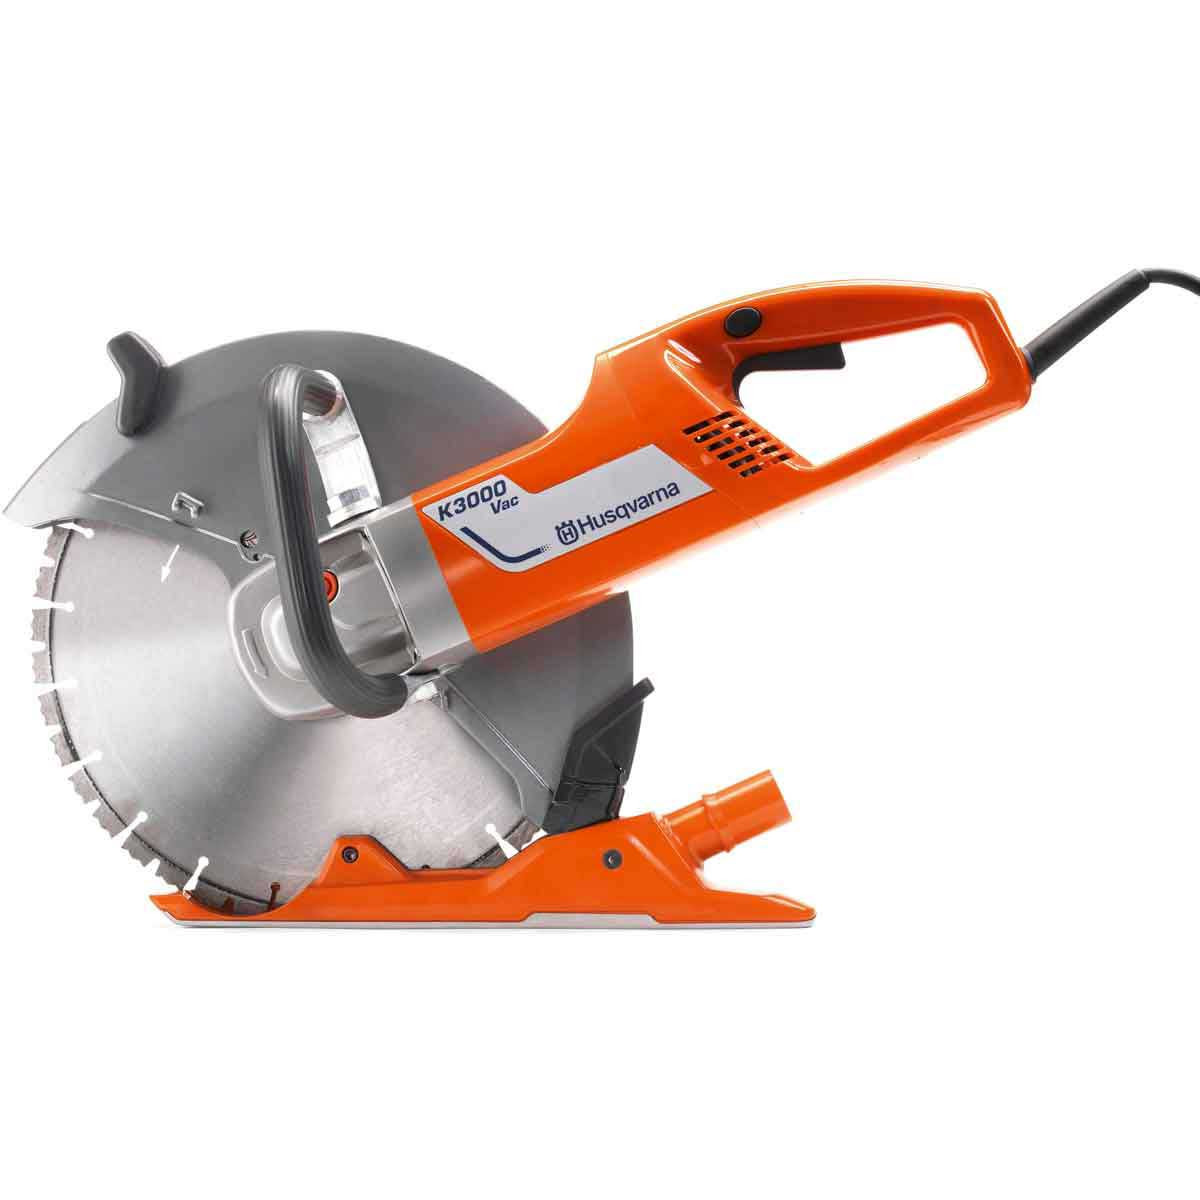 Wall Electric Masonry Saw : Husqvarna k vac concrete saw contractors direct